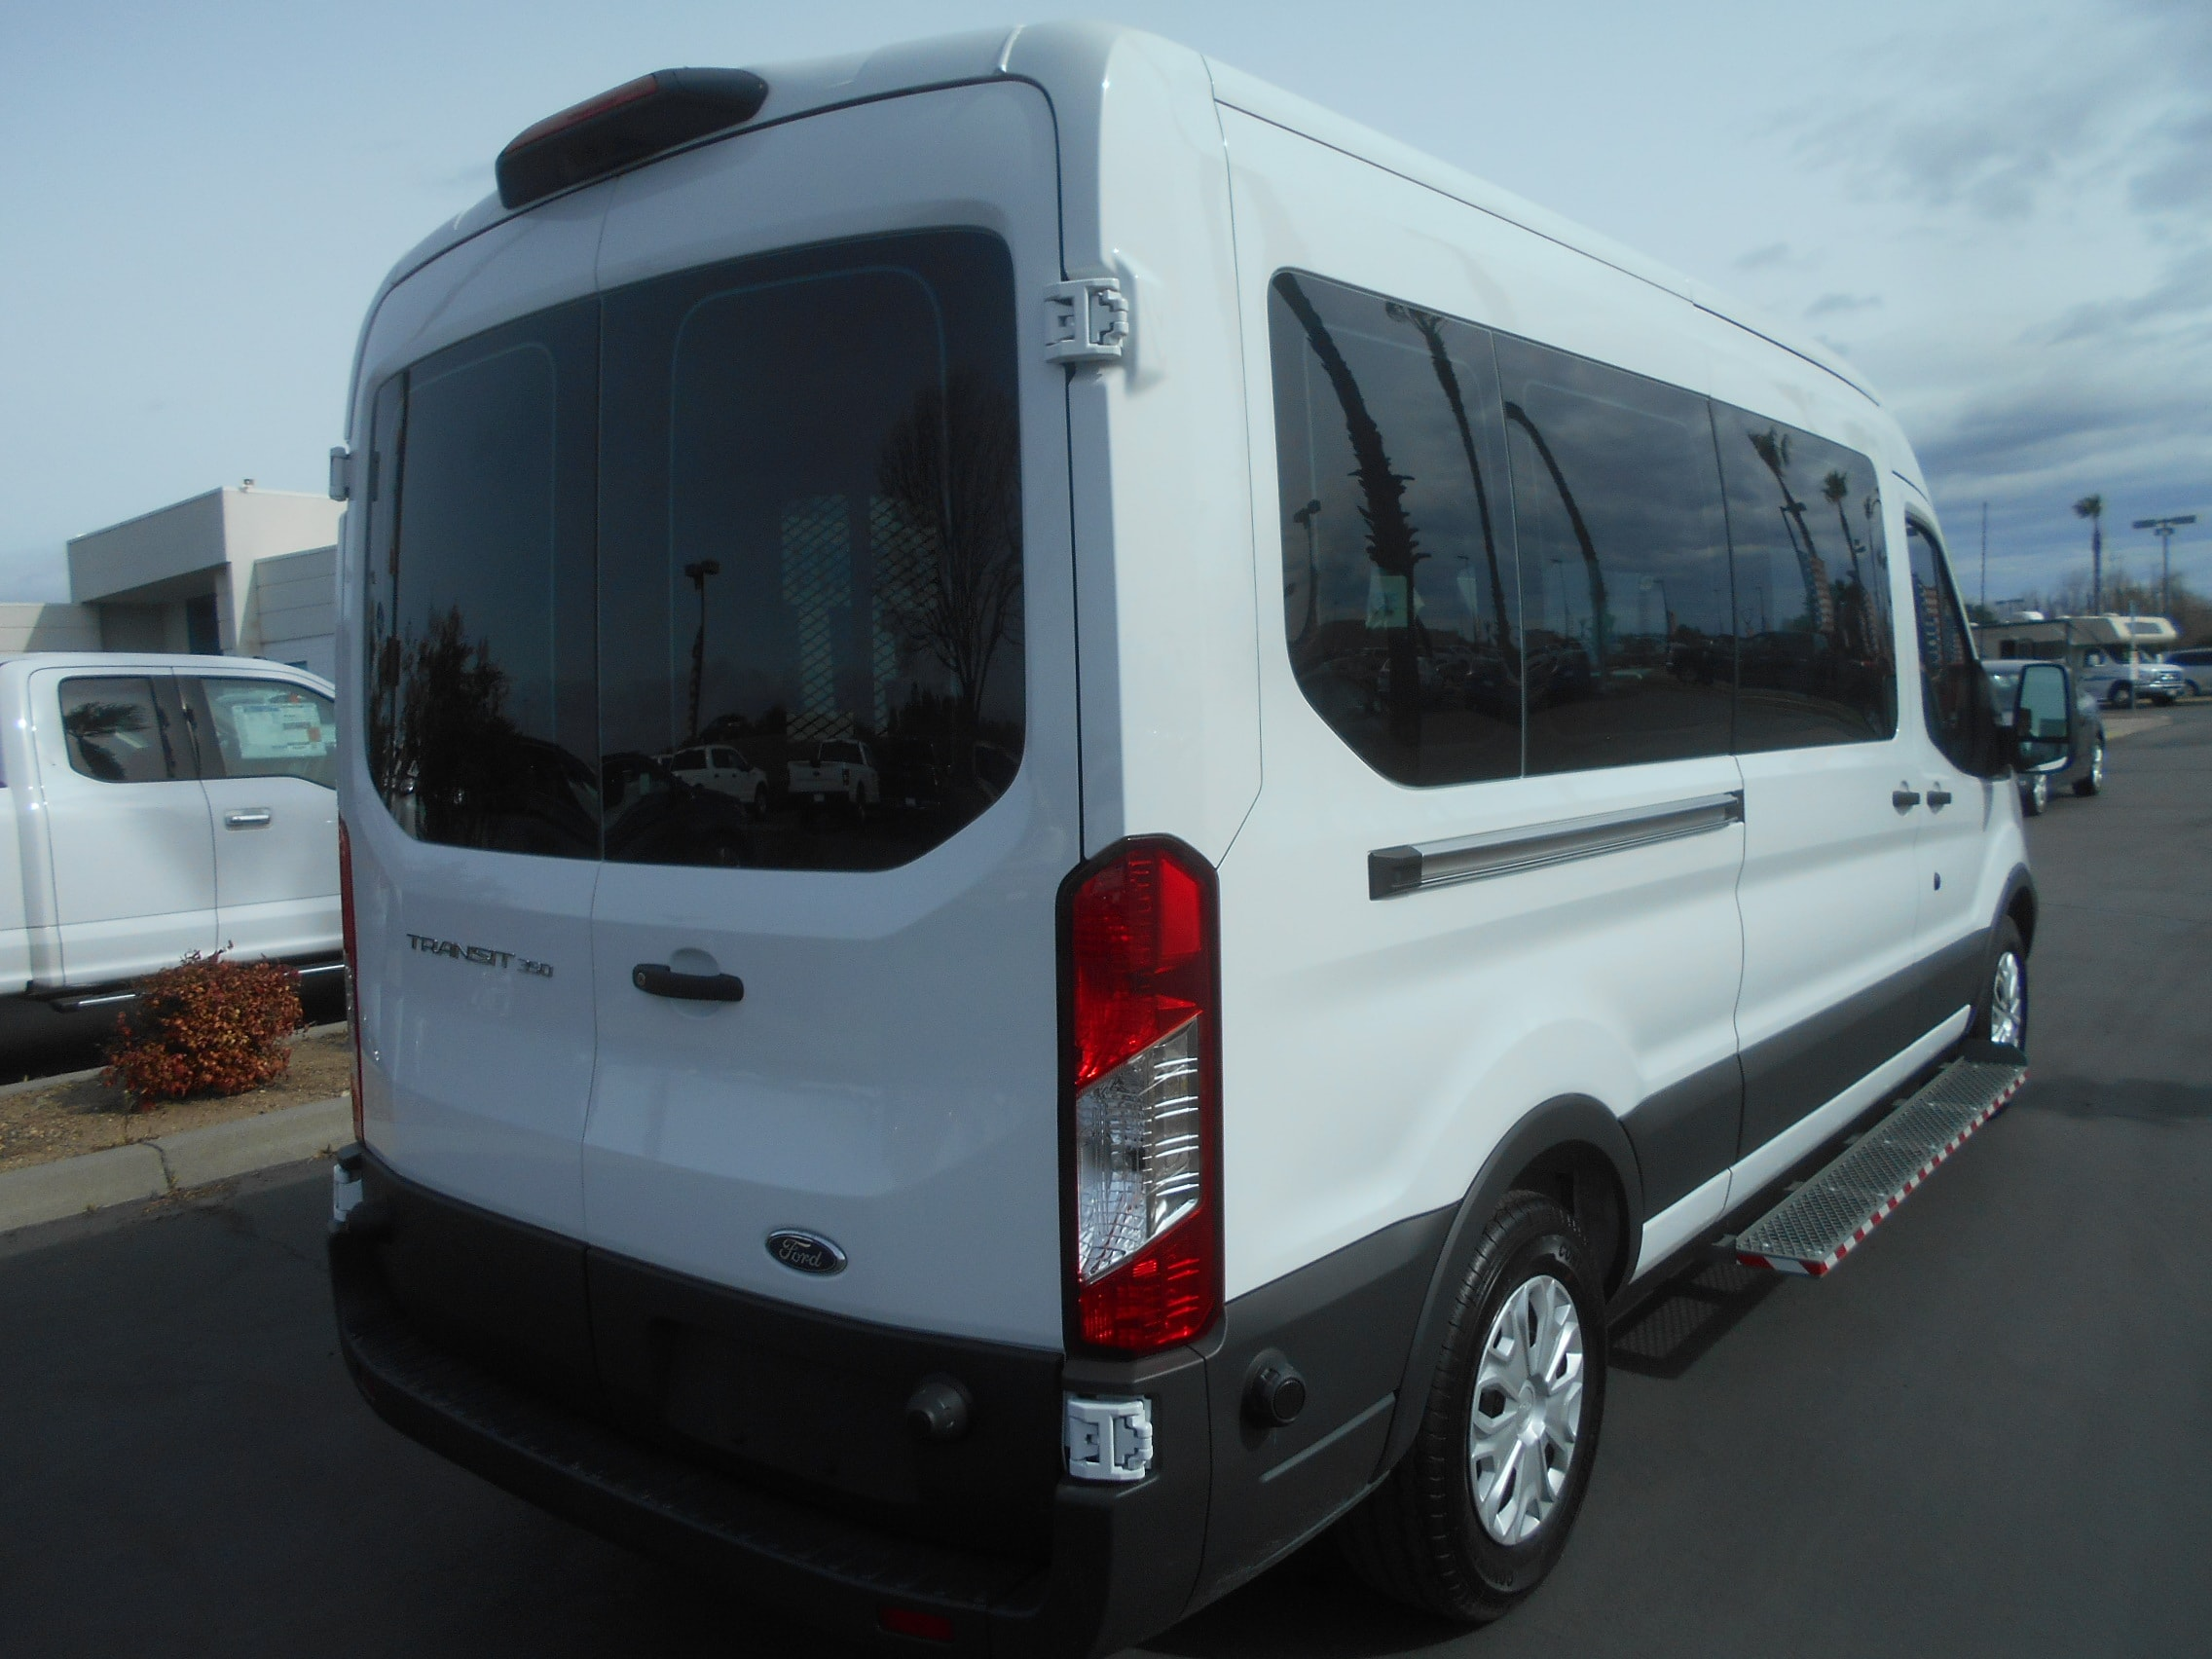 2018 Transit 350 Med Roof,  Mobility #53054 - photo 8